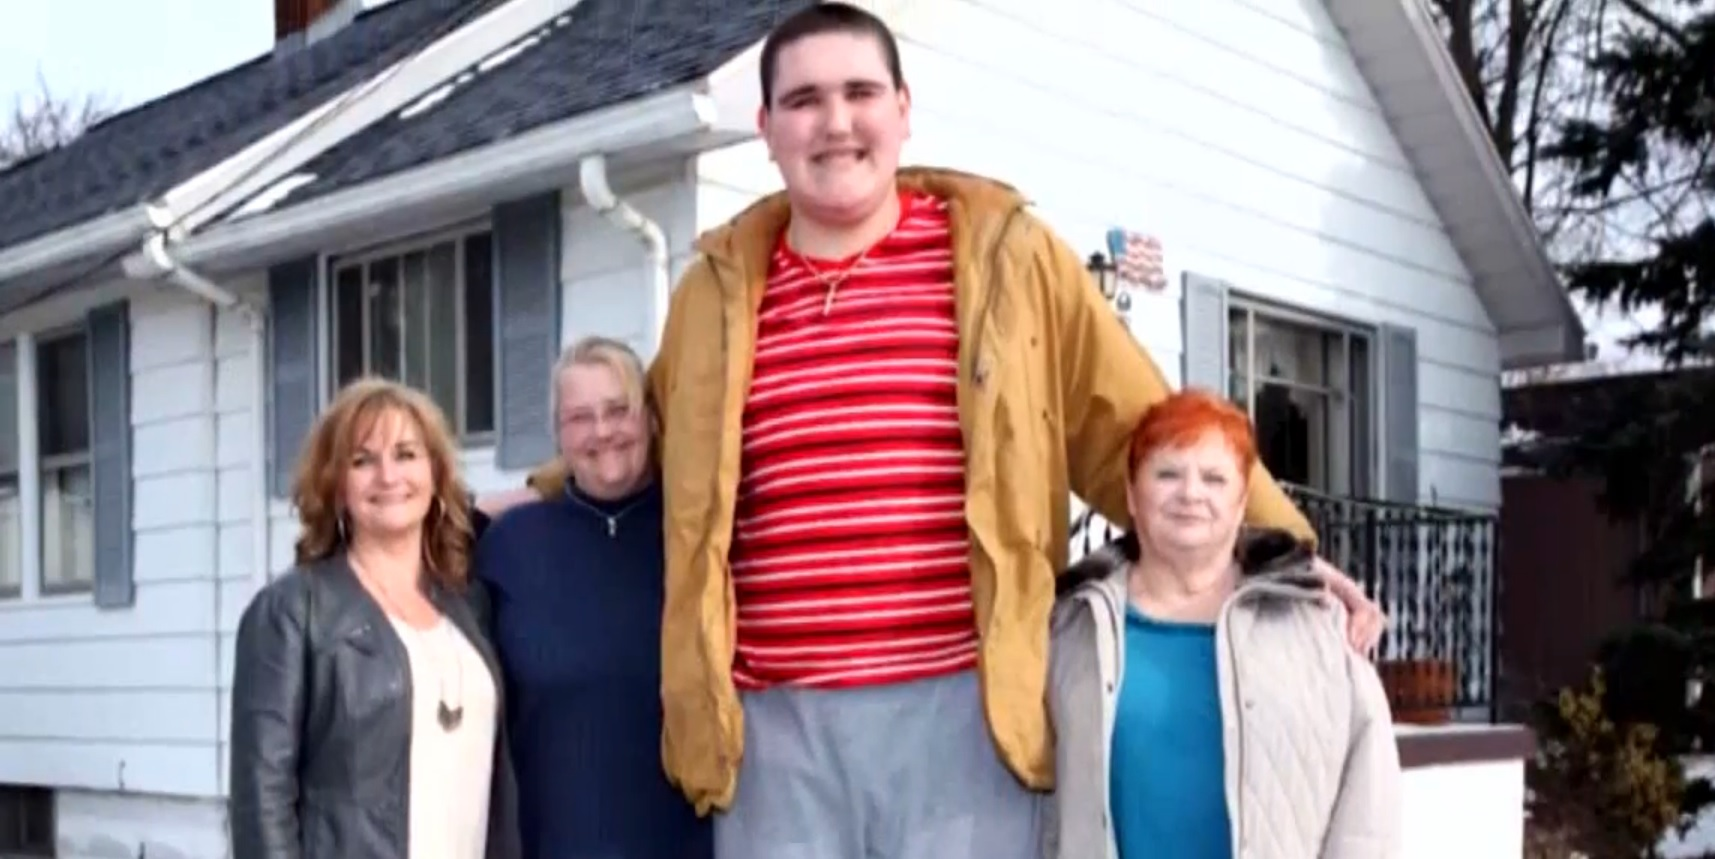 worlds next tallest man alive could be this teenager in